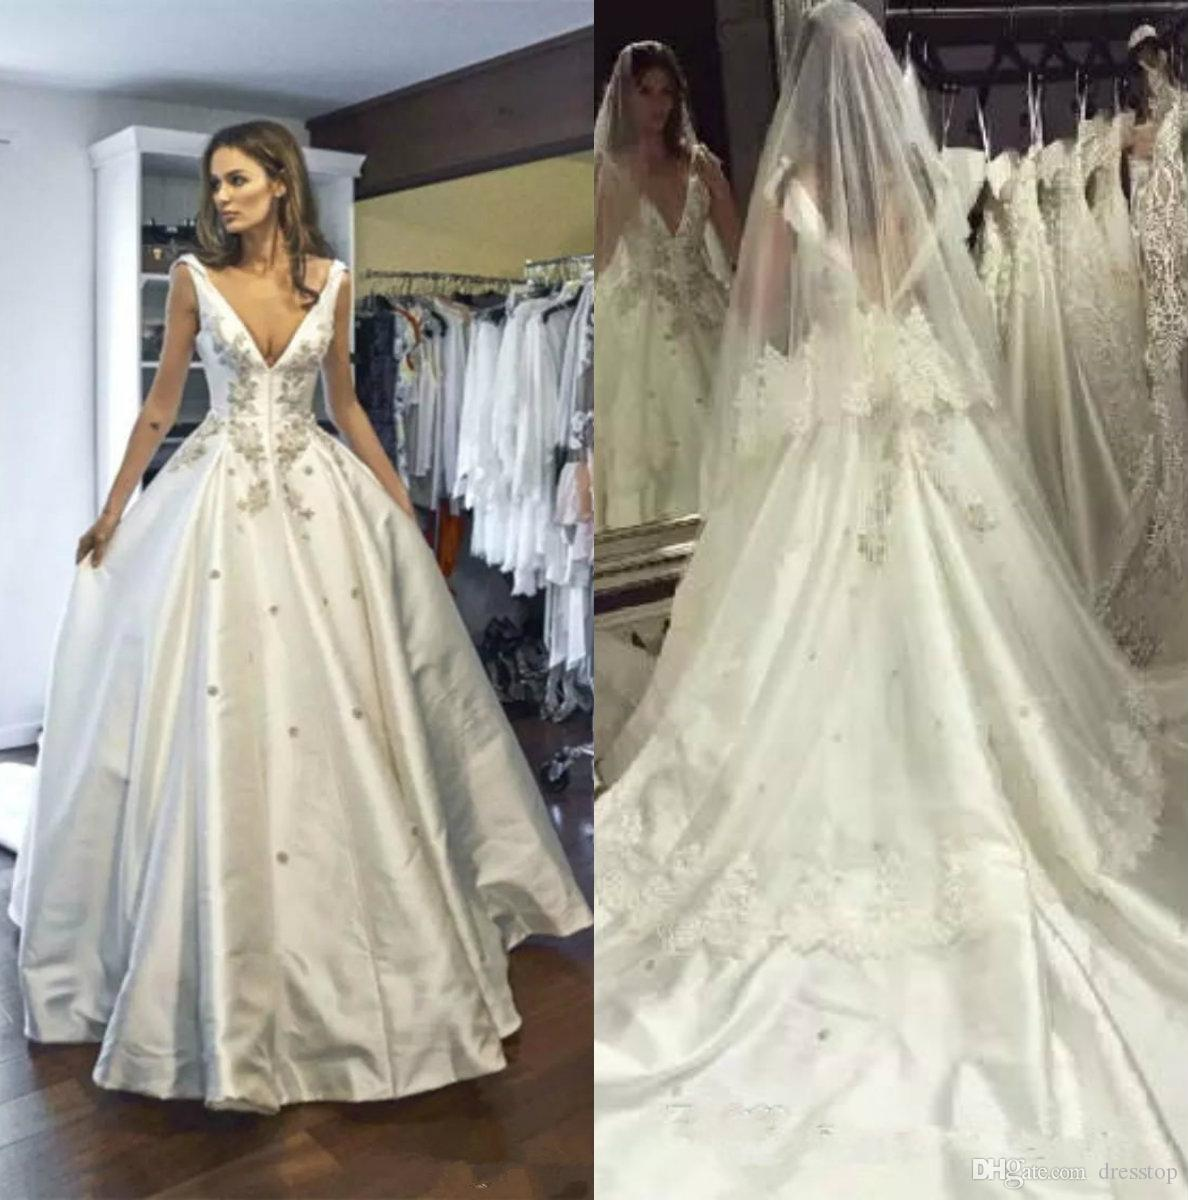 High Quality Satin Wedding Dresses Backless V Neck Winter Bridal Gowns Court Train Crystals Medieval Vestidos Appliques Dress A Ball Gown: Cheap Meval Wedding Dresses At Websimilar.org